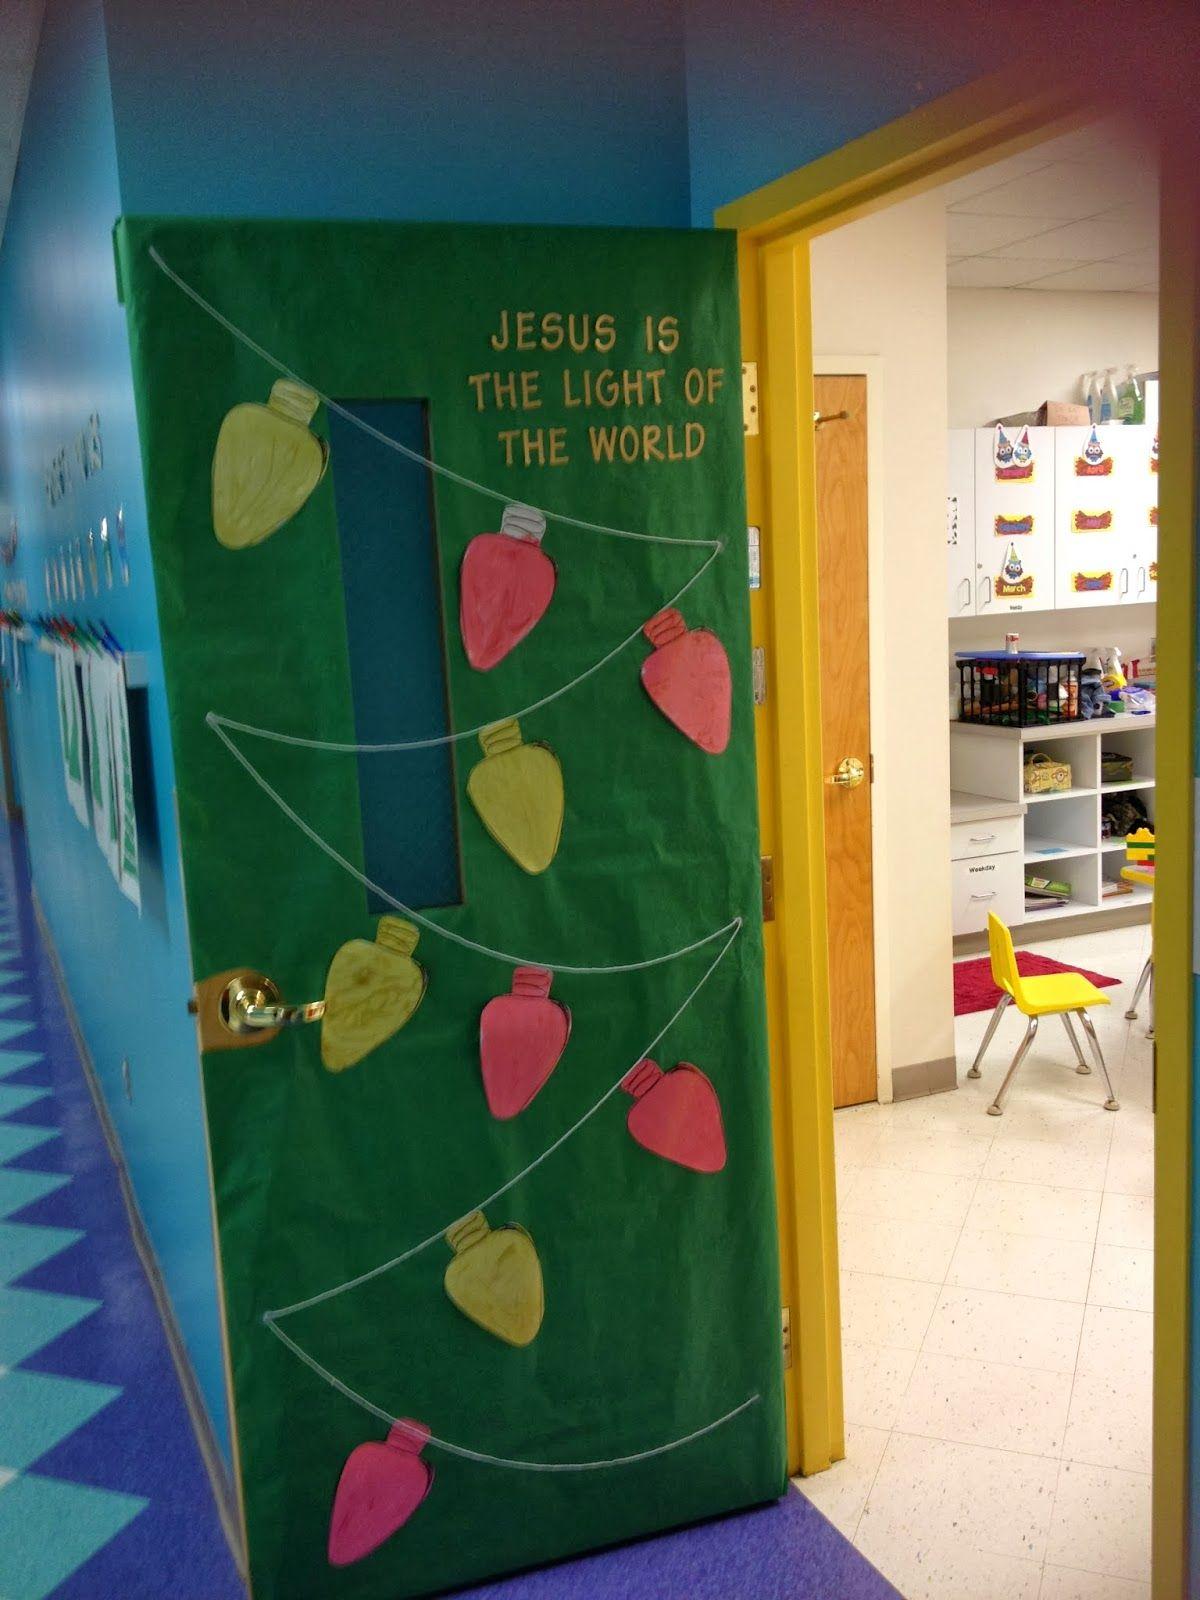 The Kids Can Have A Bedroom Door Decorating Contest Our Life On Budget This Week In Preschool Is Light Of World Christmas